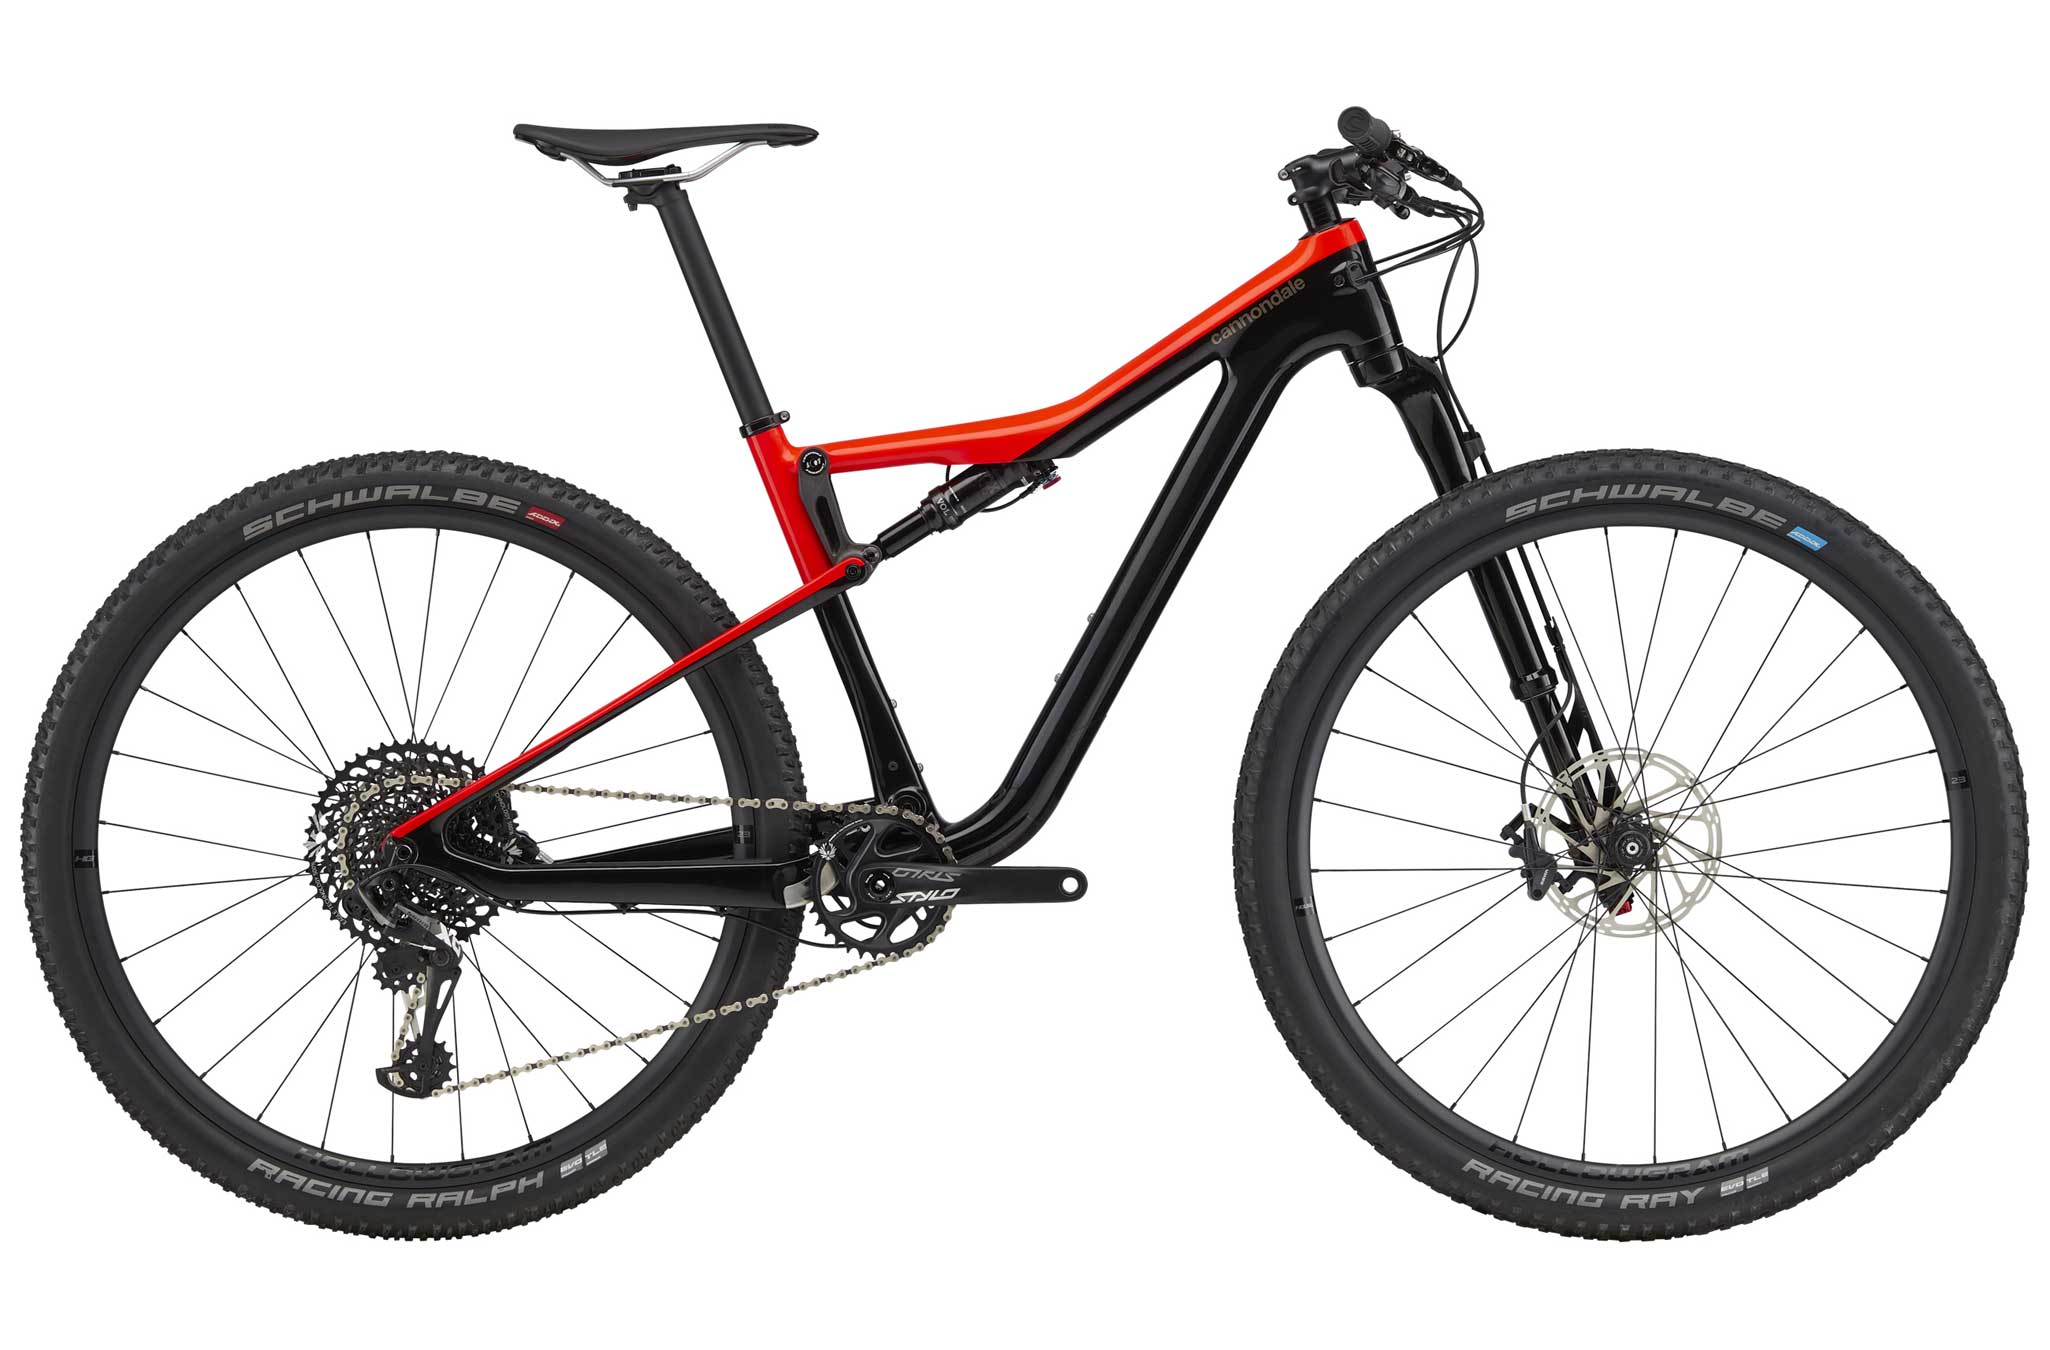 cannondale-scalpel-3-2020-mountain-bike-red-EV360843-3000-1